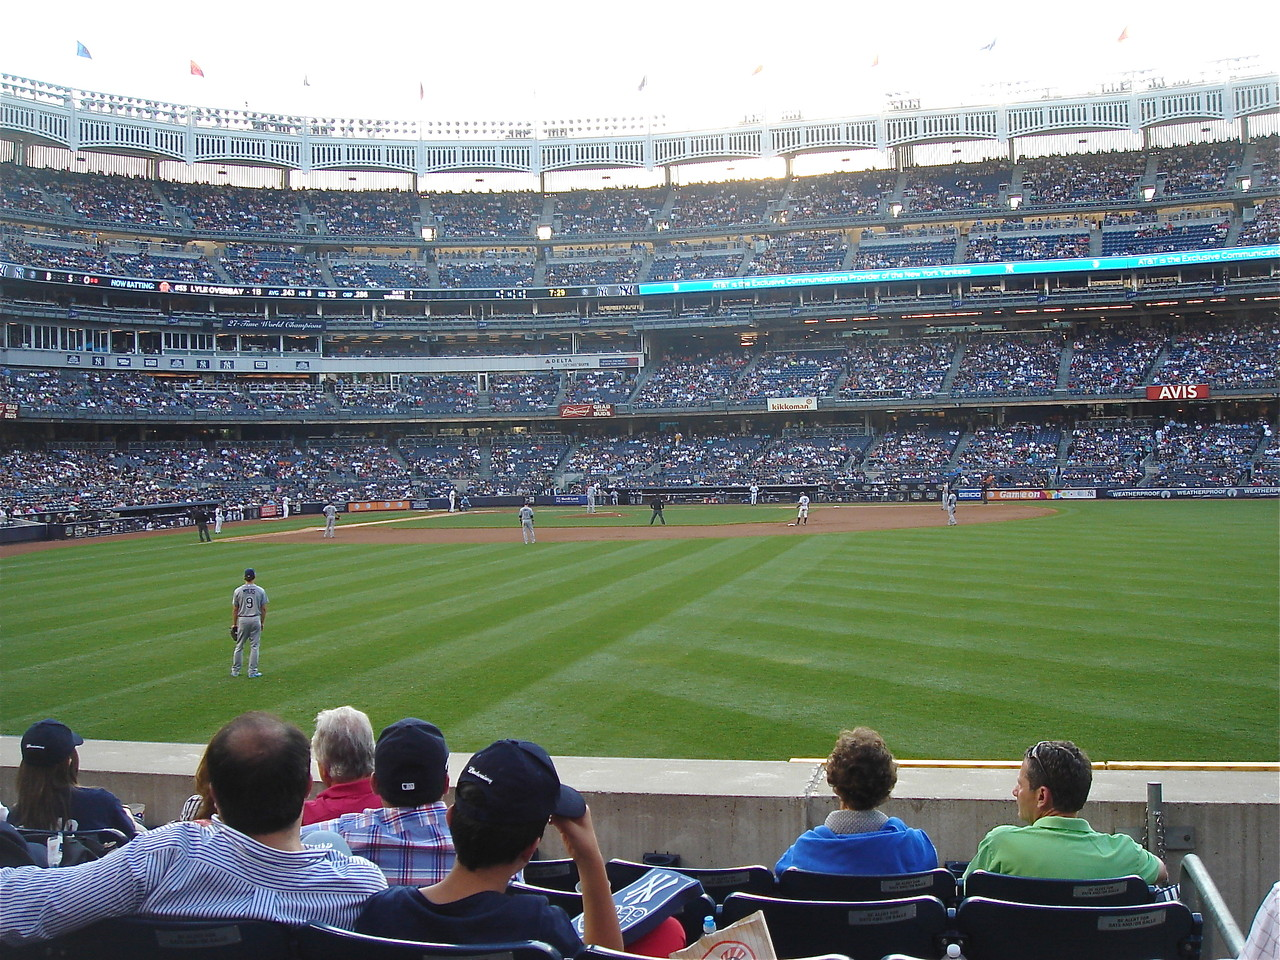 NY Yankee Game, 6-21-2013, against the Tampa Rays